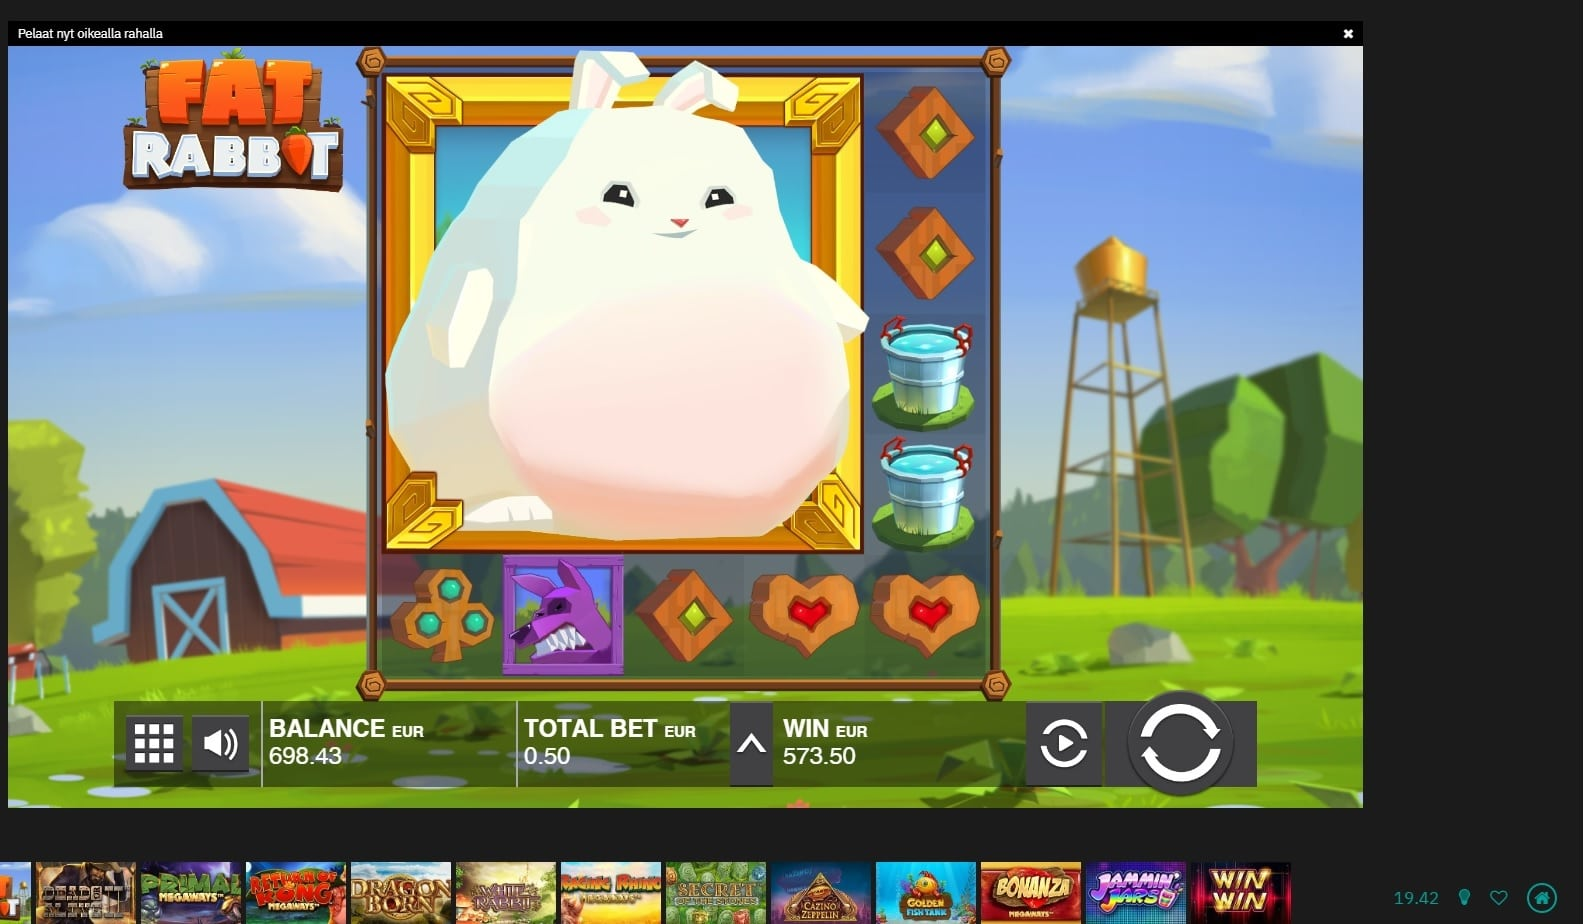 Fat Rabbit Big Win Picture